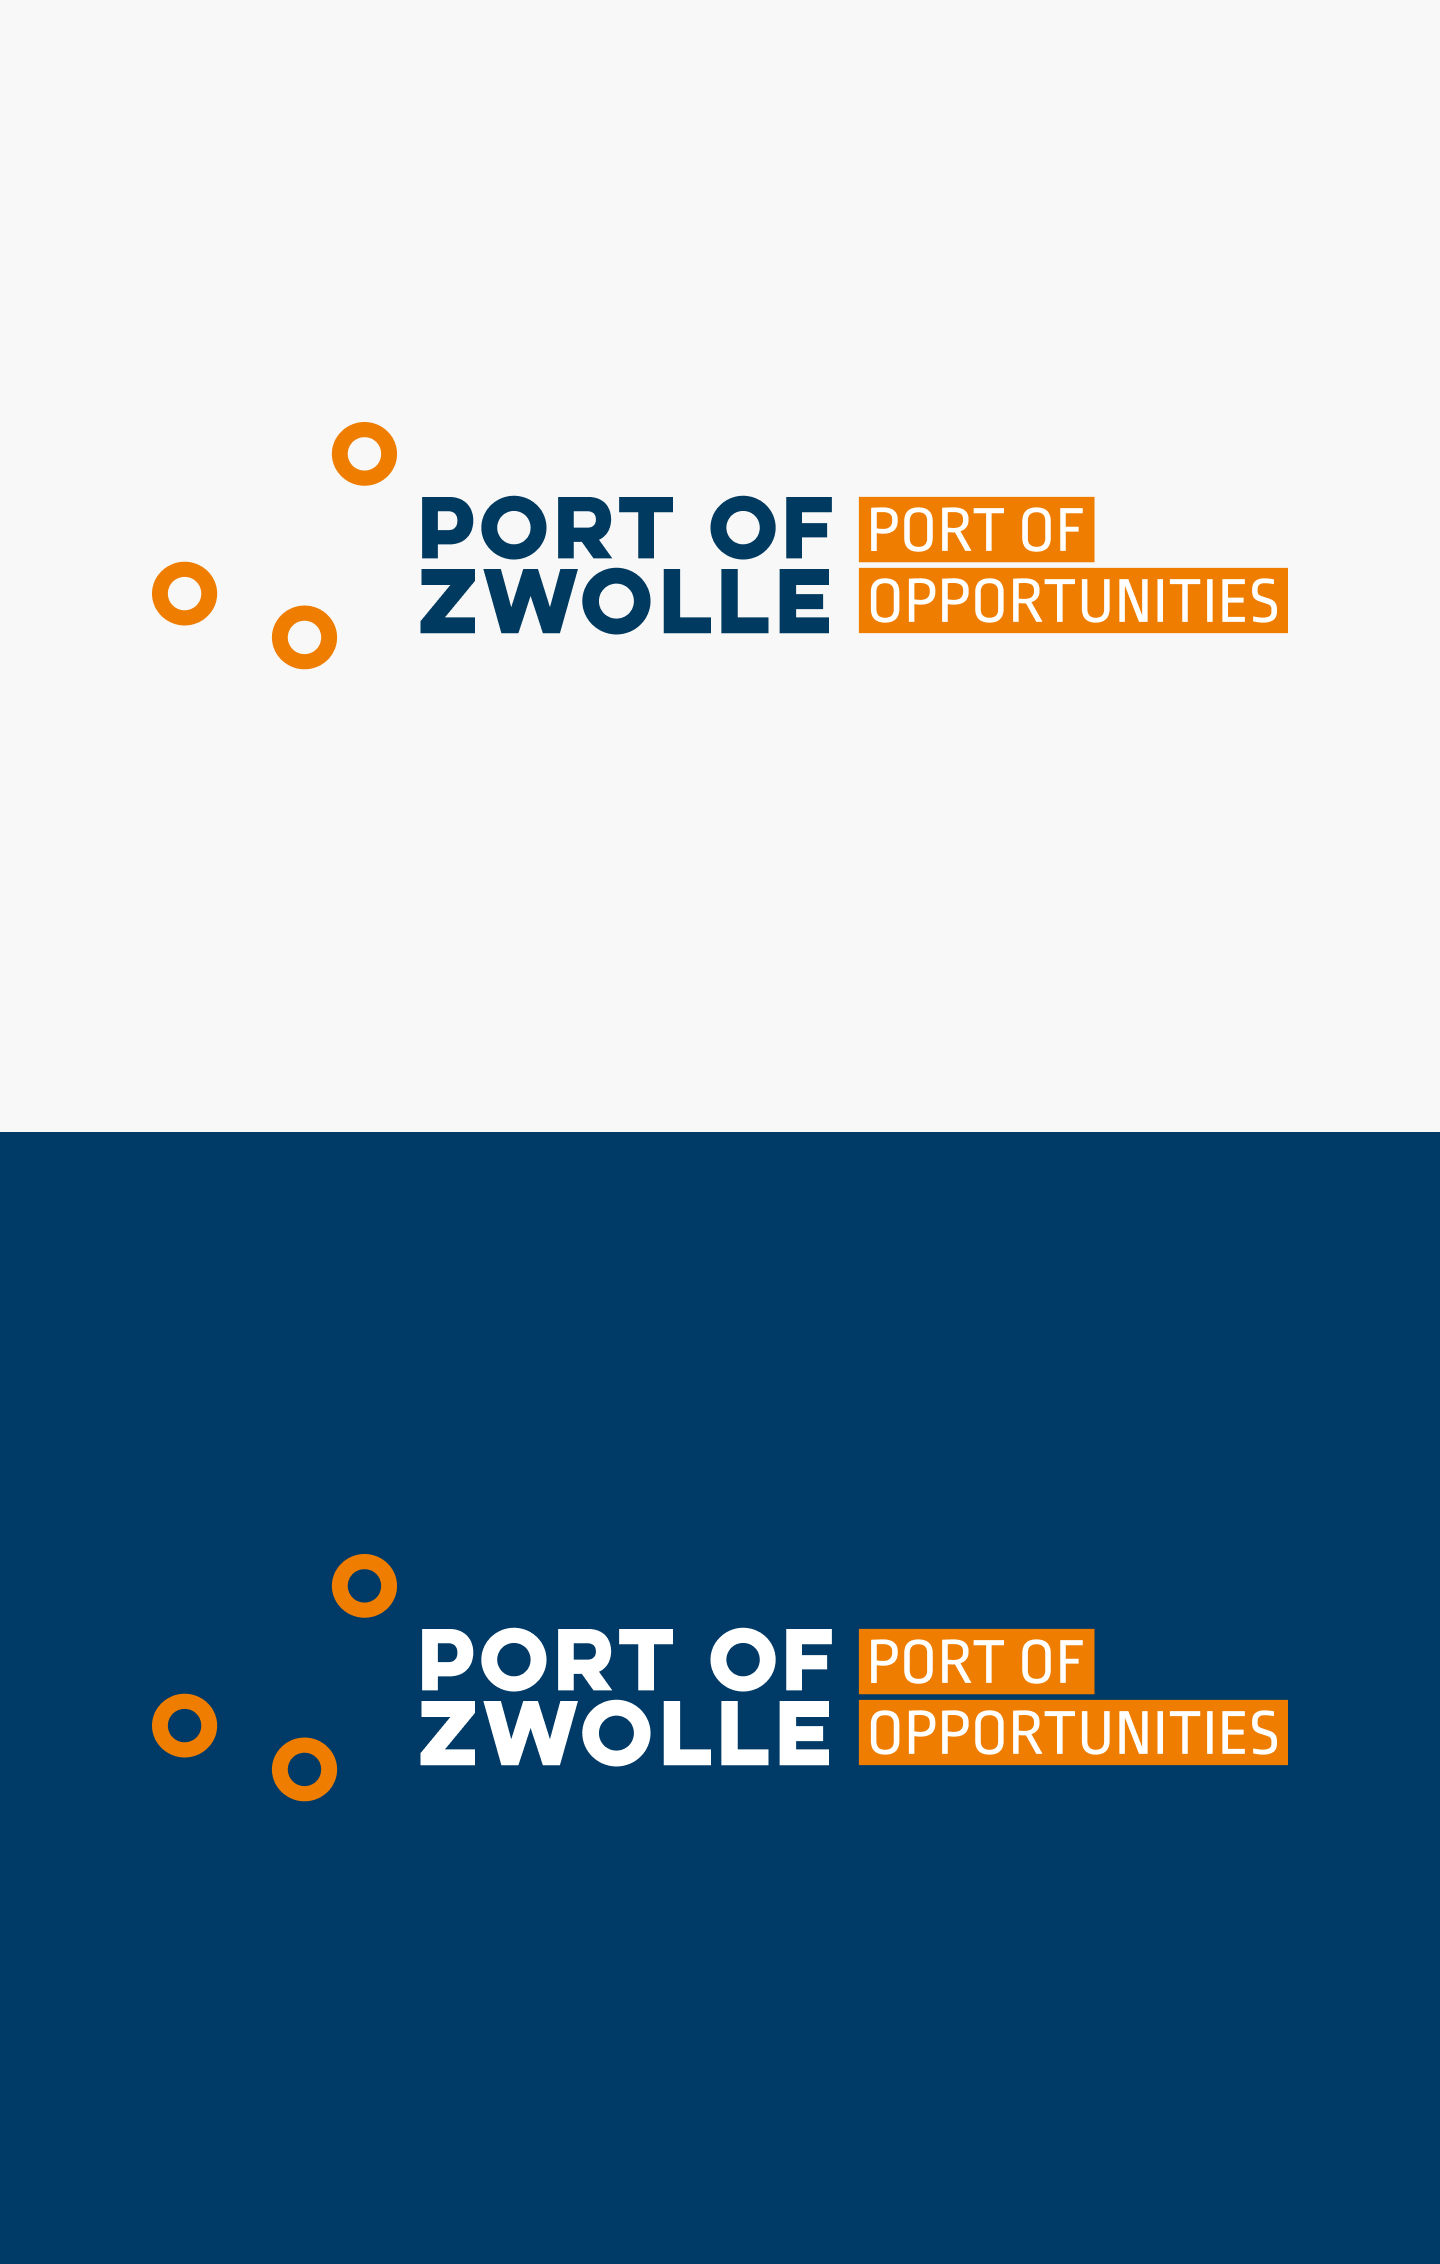 Port of Zwolle - Port of Opportunities